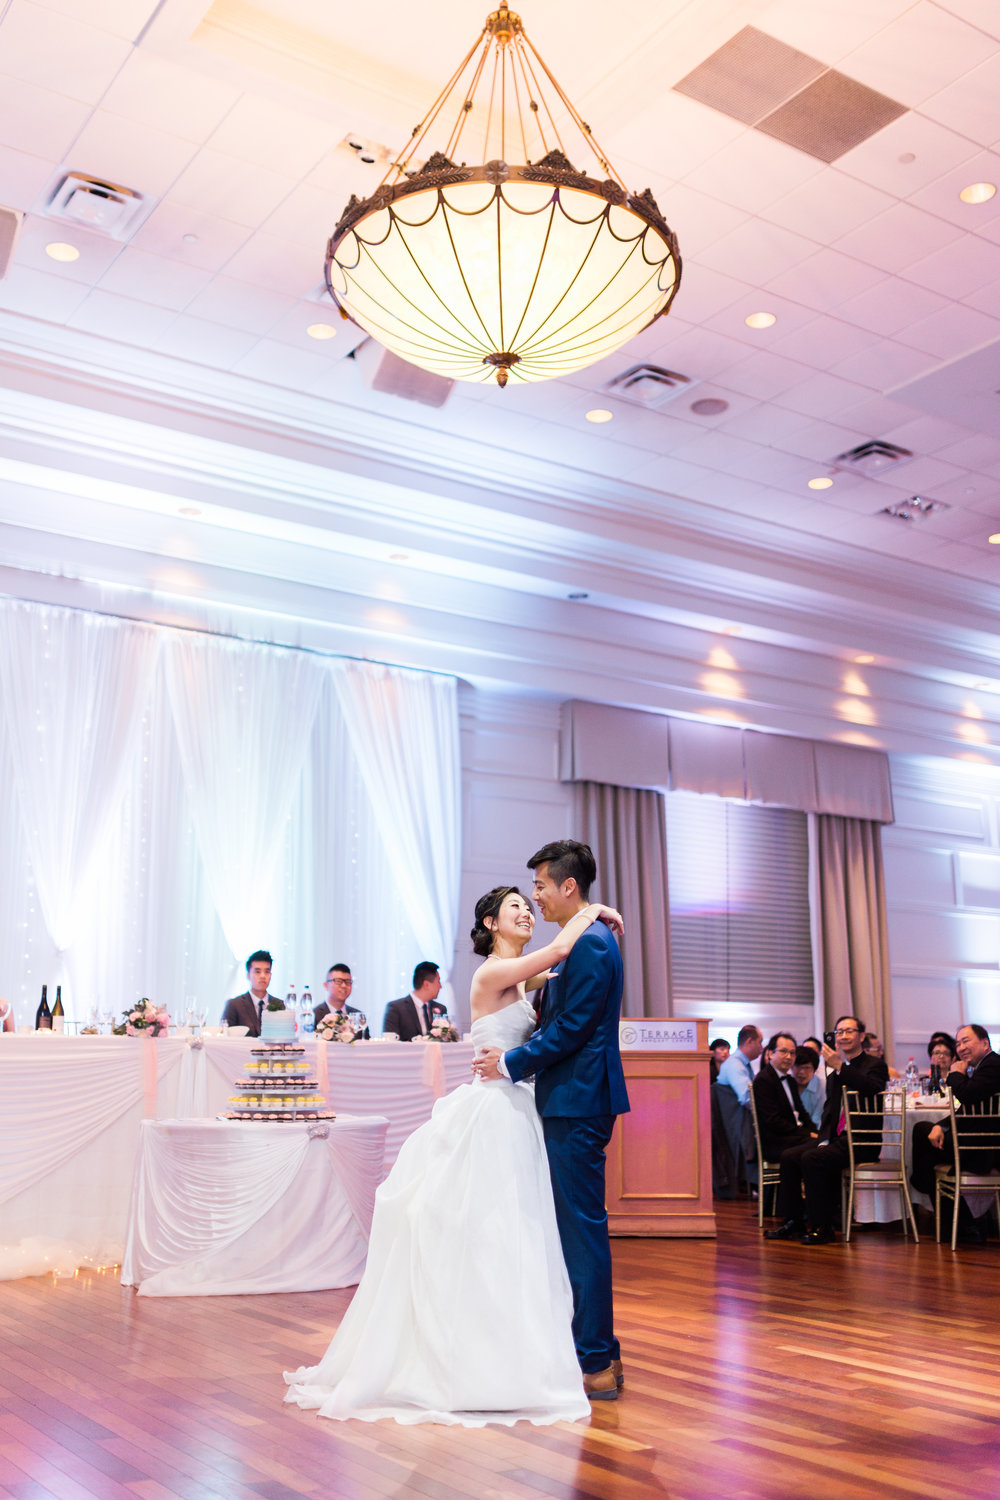 Toronto Fine Art Photographer - Terrace Banquet Hall Wedding - Reception-73.jpg